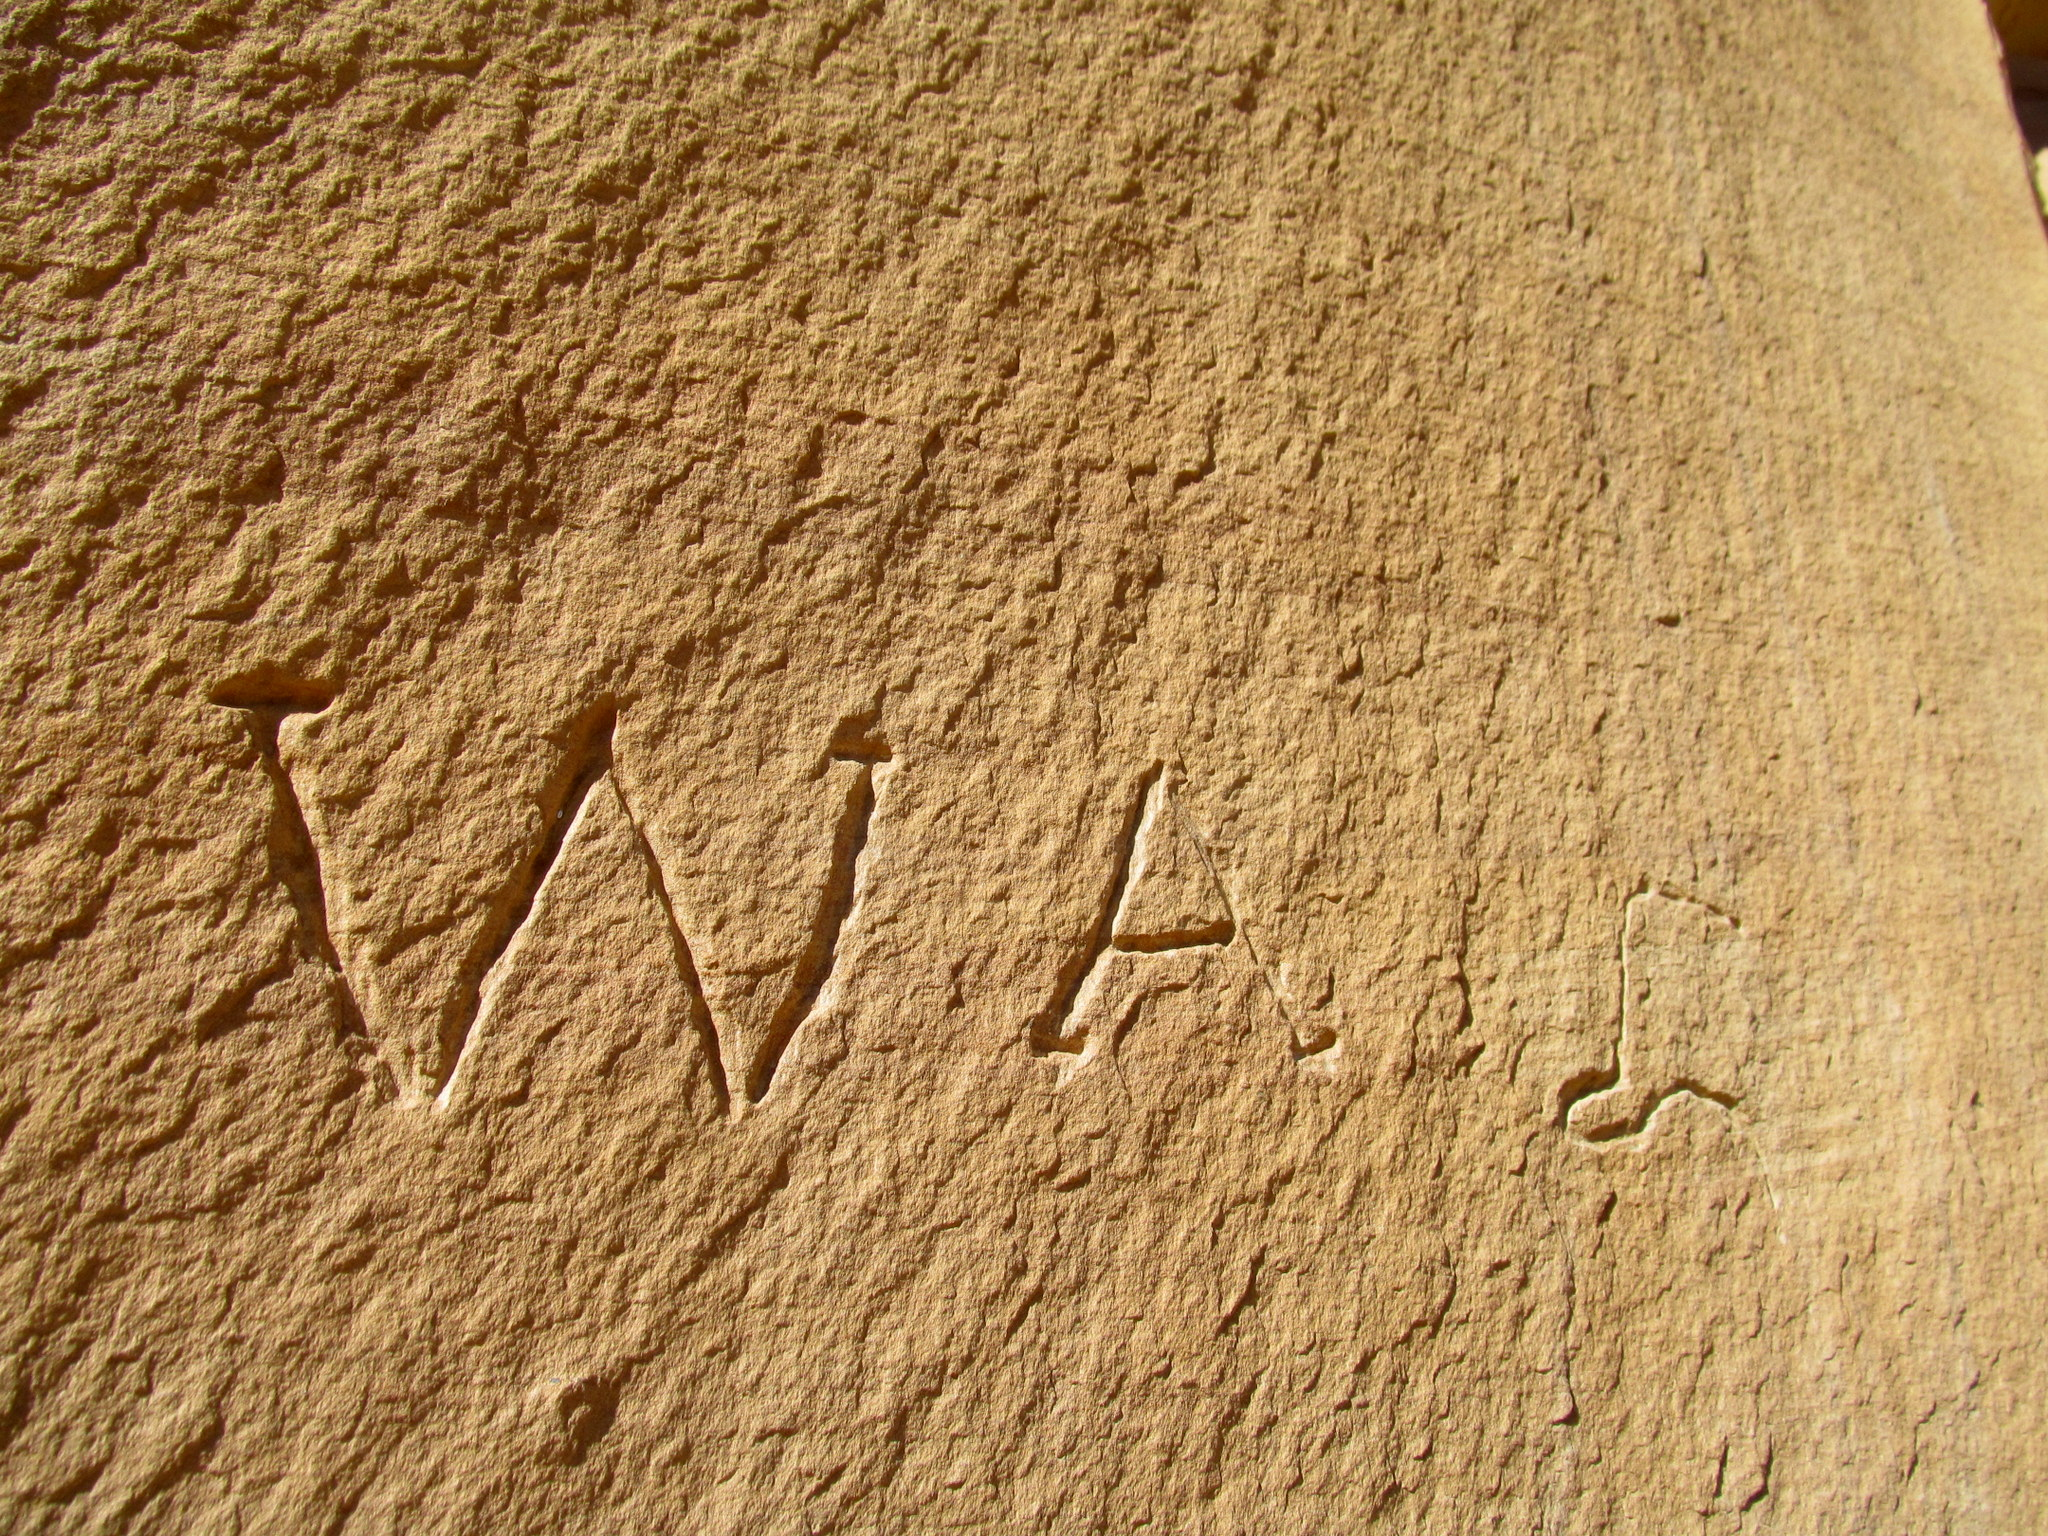 Photo: W.A. inscription